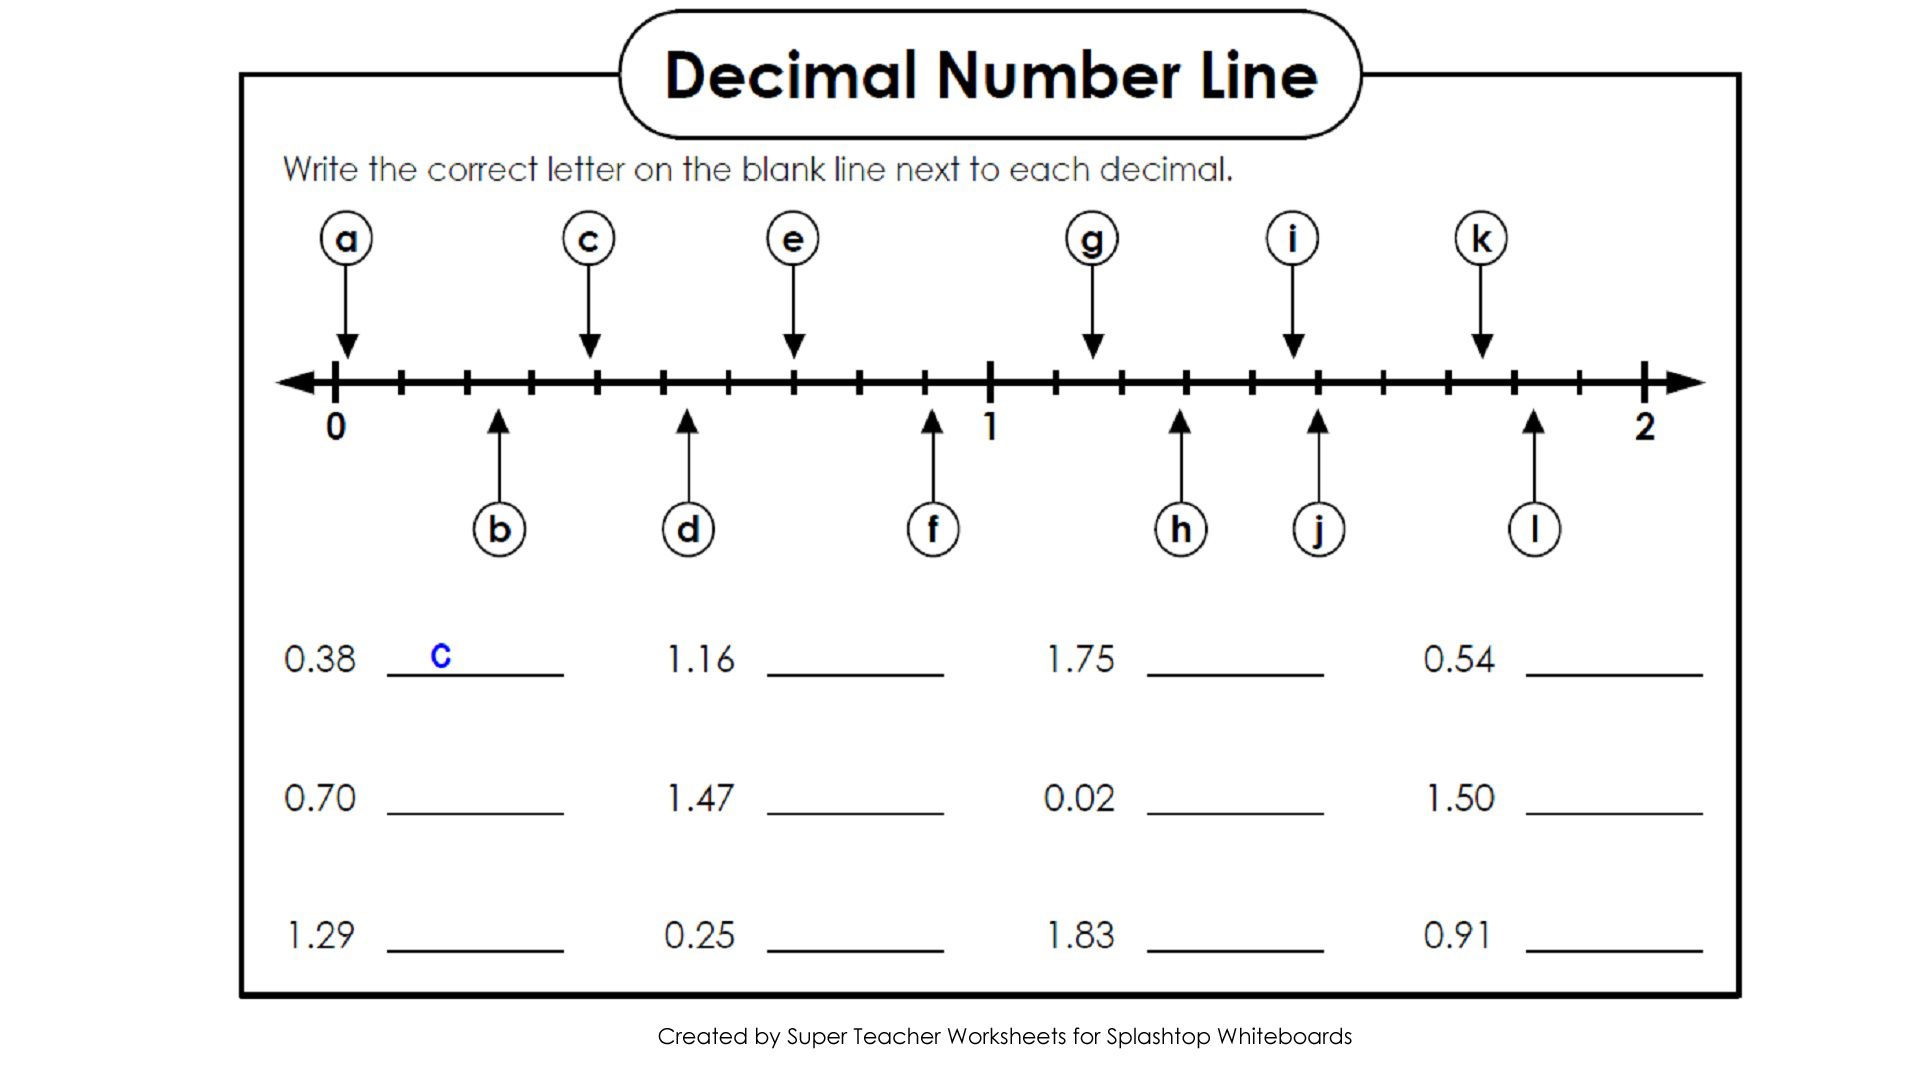 Super Teacher Worksheets Division With Decimals